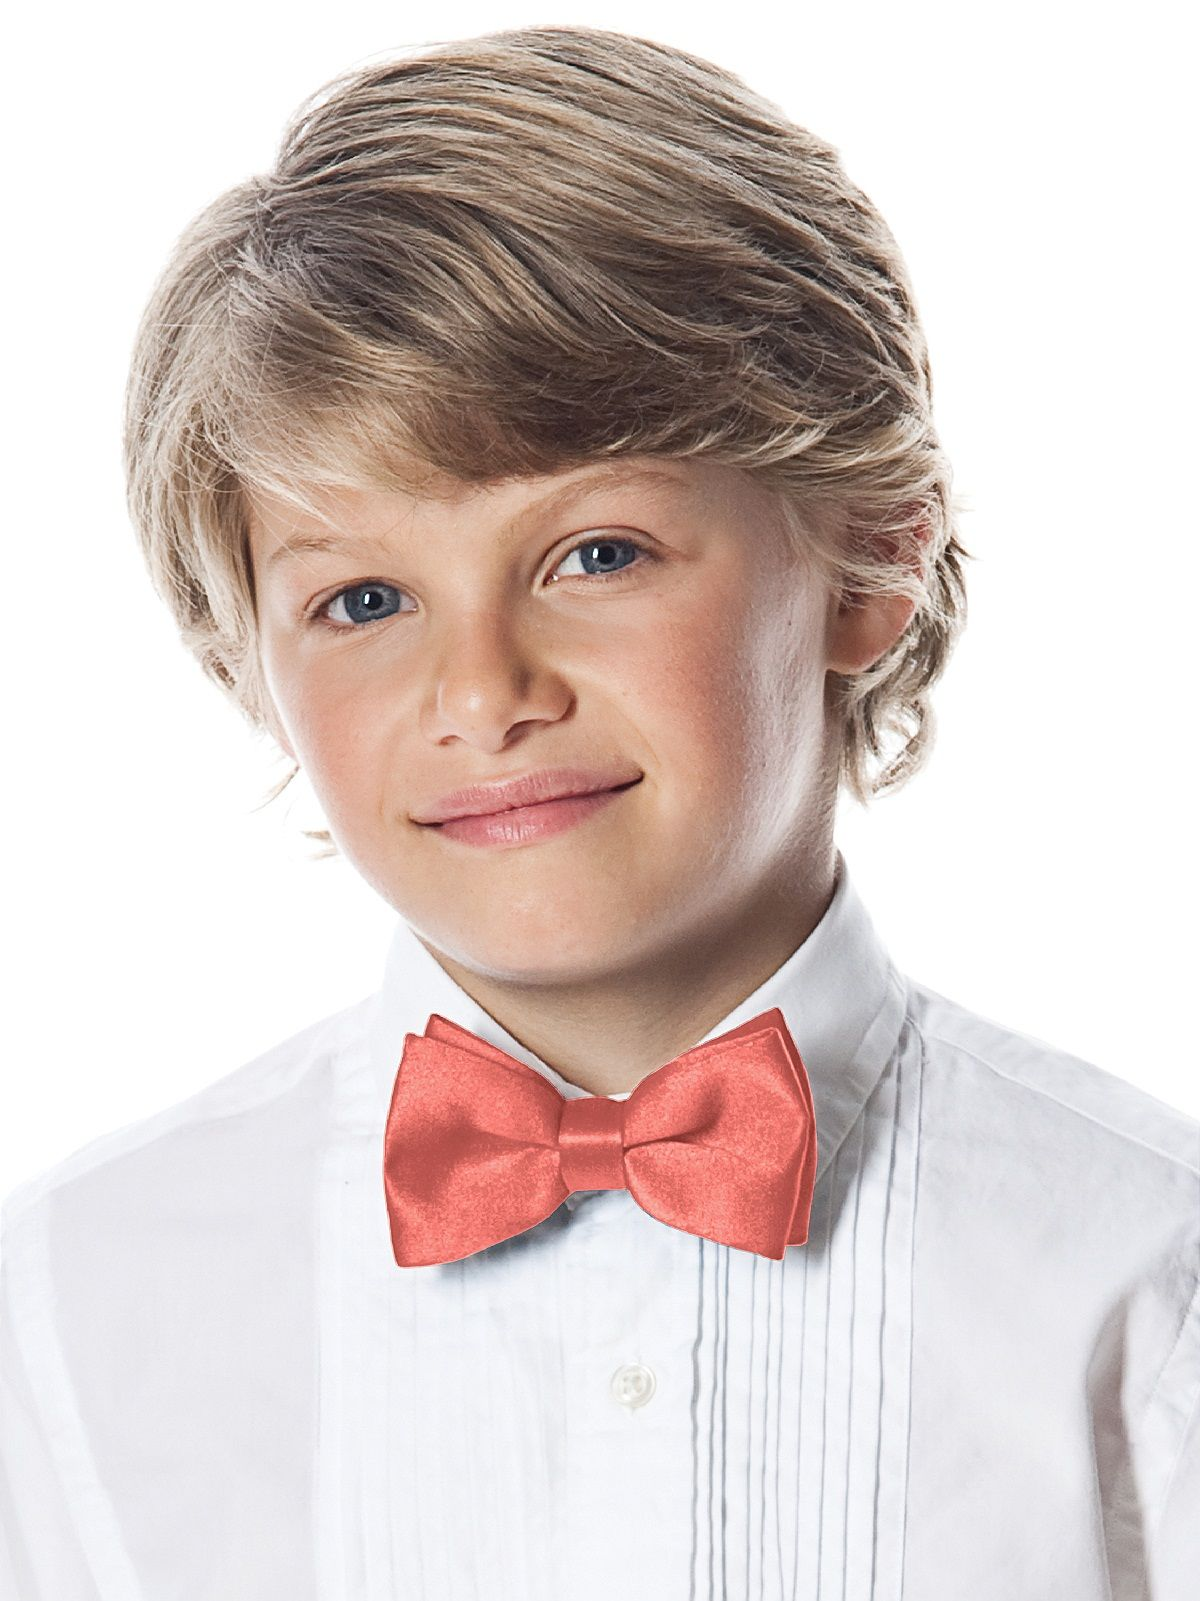 Boy hairstyle formal your caption here  ericus wedding ideas  pinterest  captions and